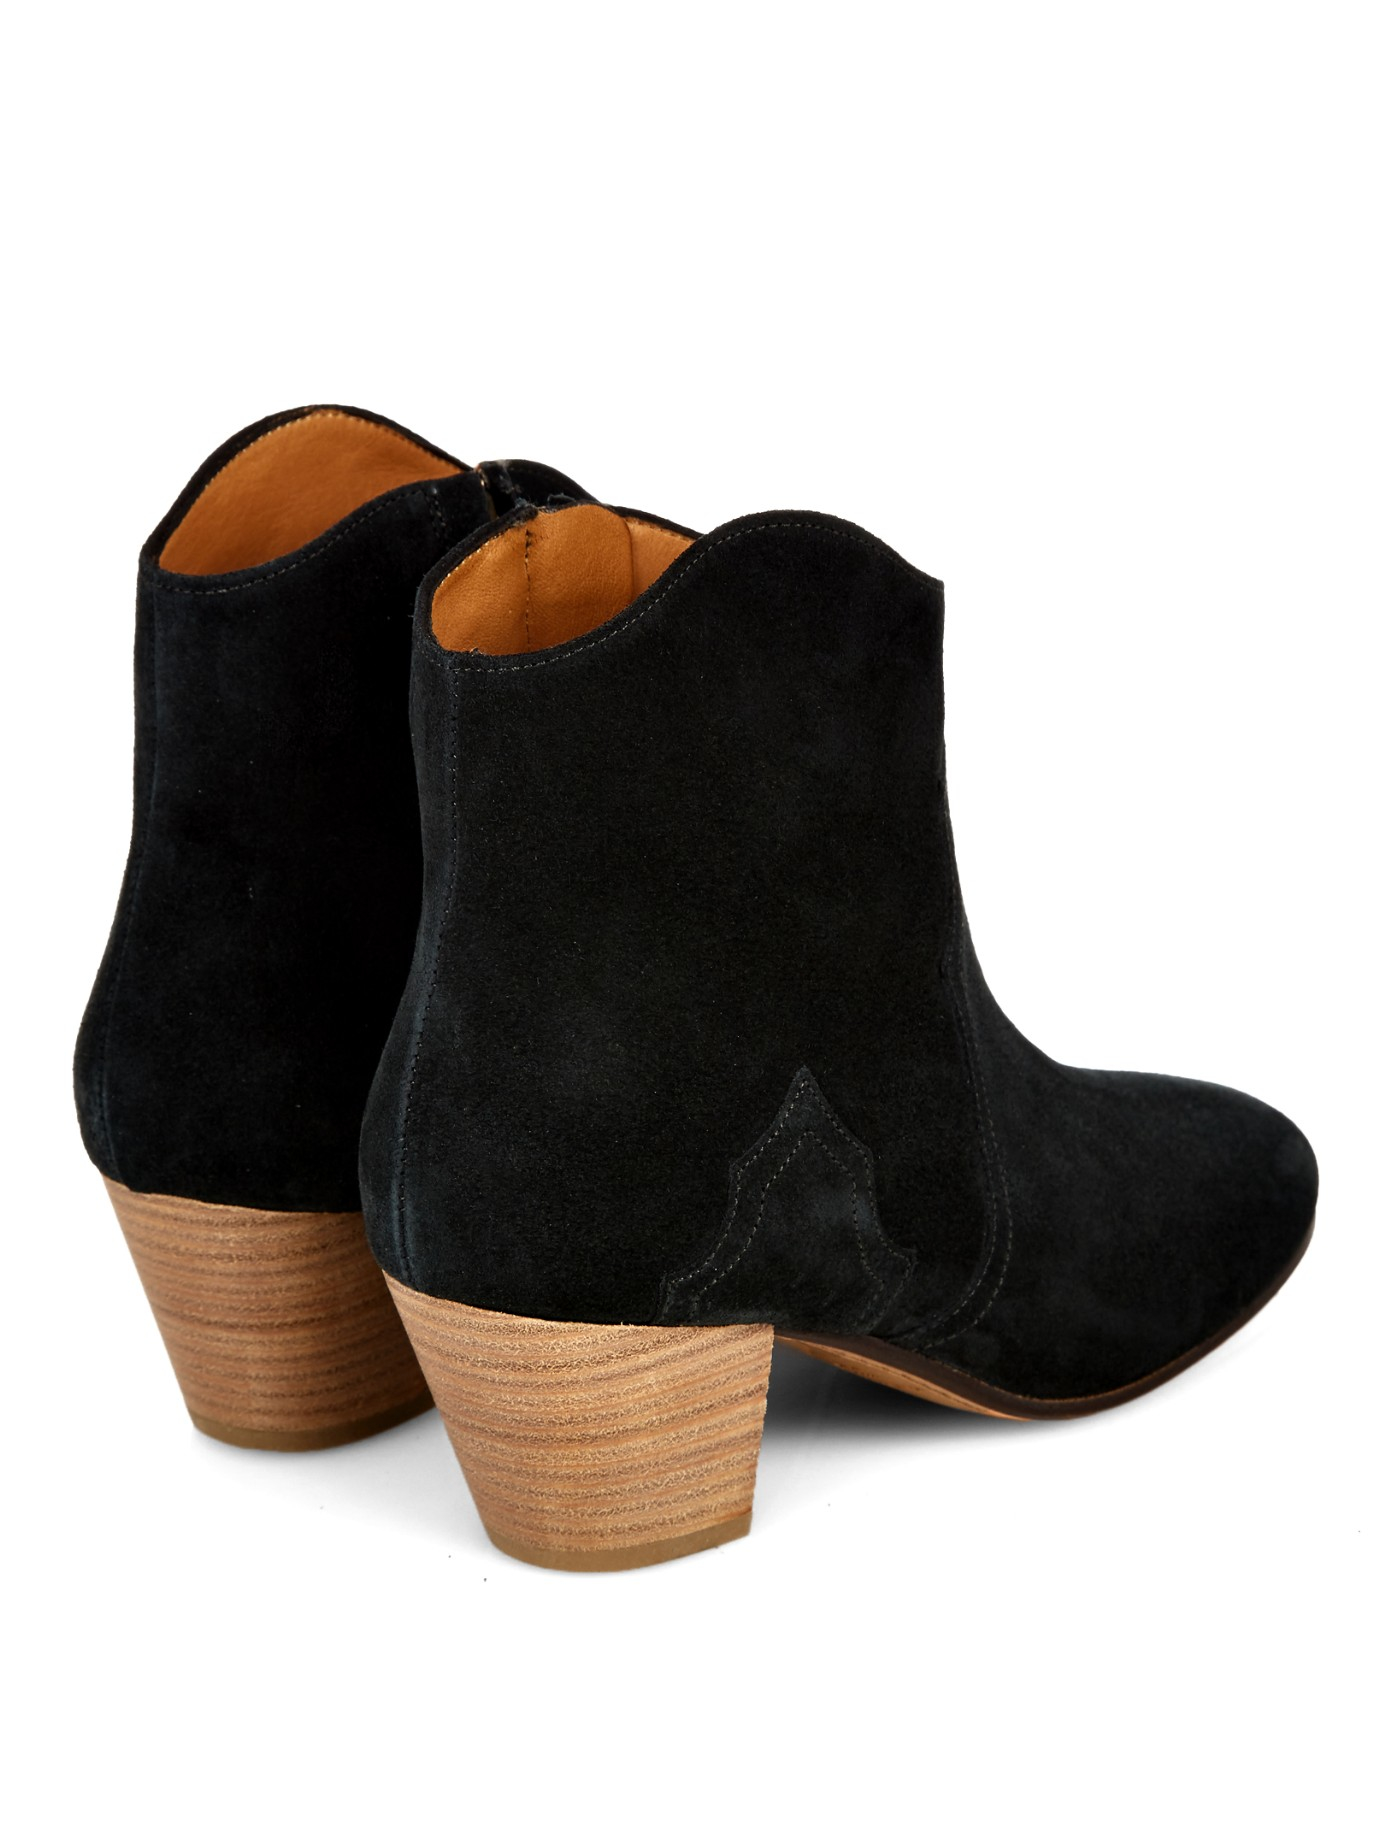 marant 201 toile dicker suede boots in black lyst